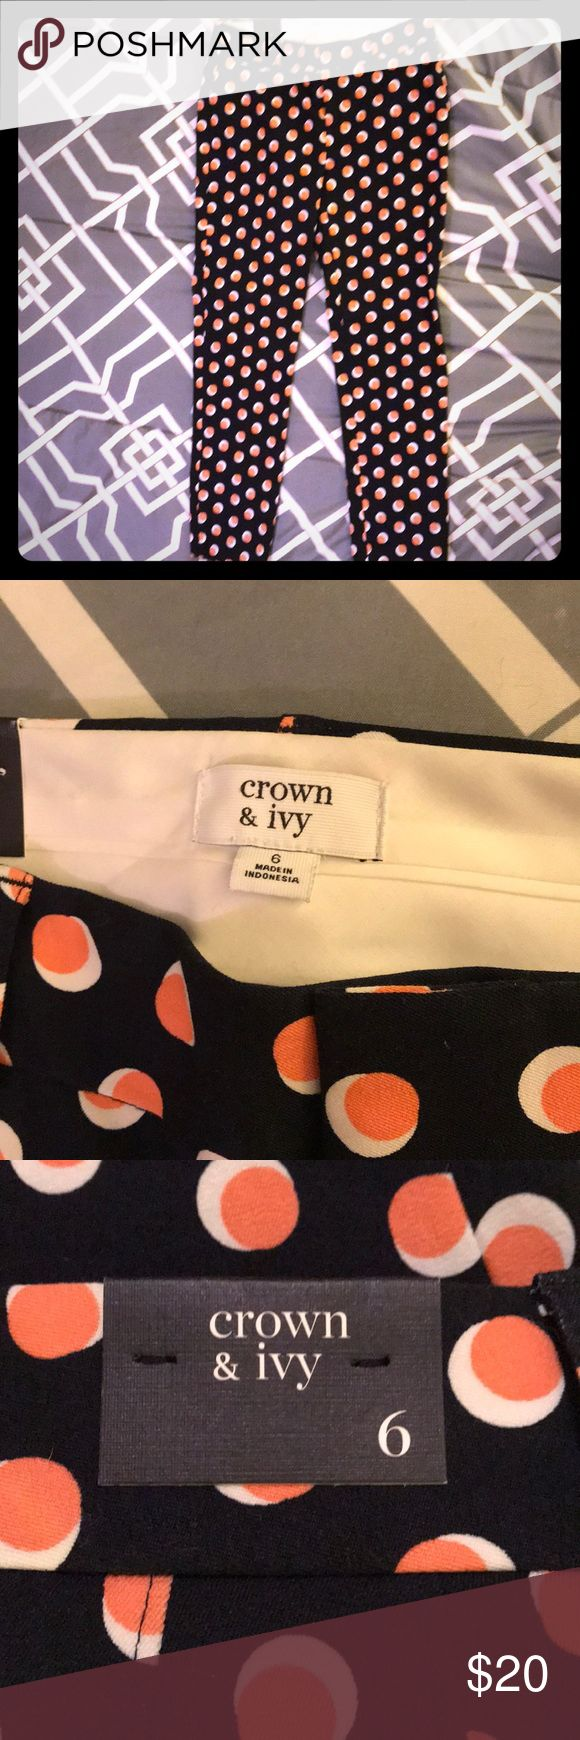 Crown and Ivy Pants Size 6 Crown and Ivy pants from Belk. Fun pattern of navy pants with white and coral polka dots. Never been worn. Brand new with tags. crown and ivy Pants Skinny